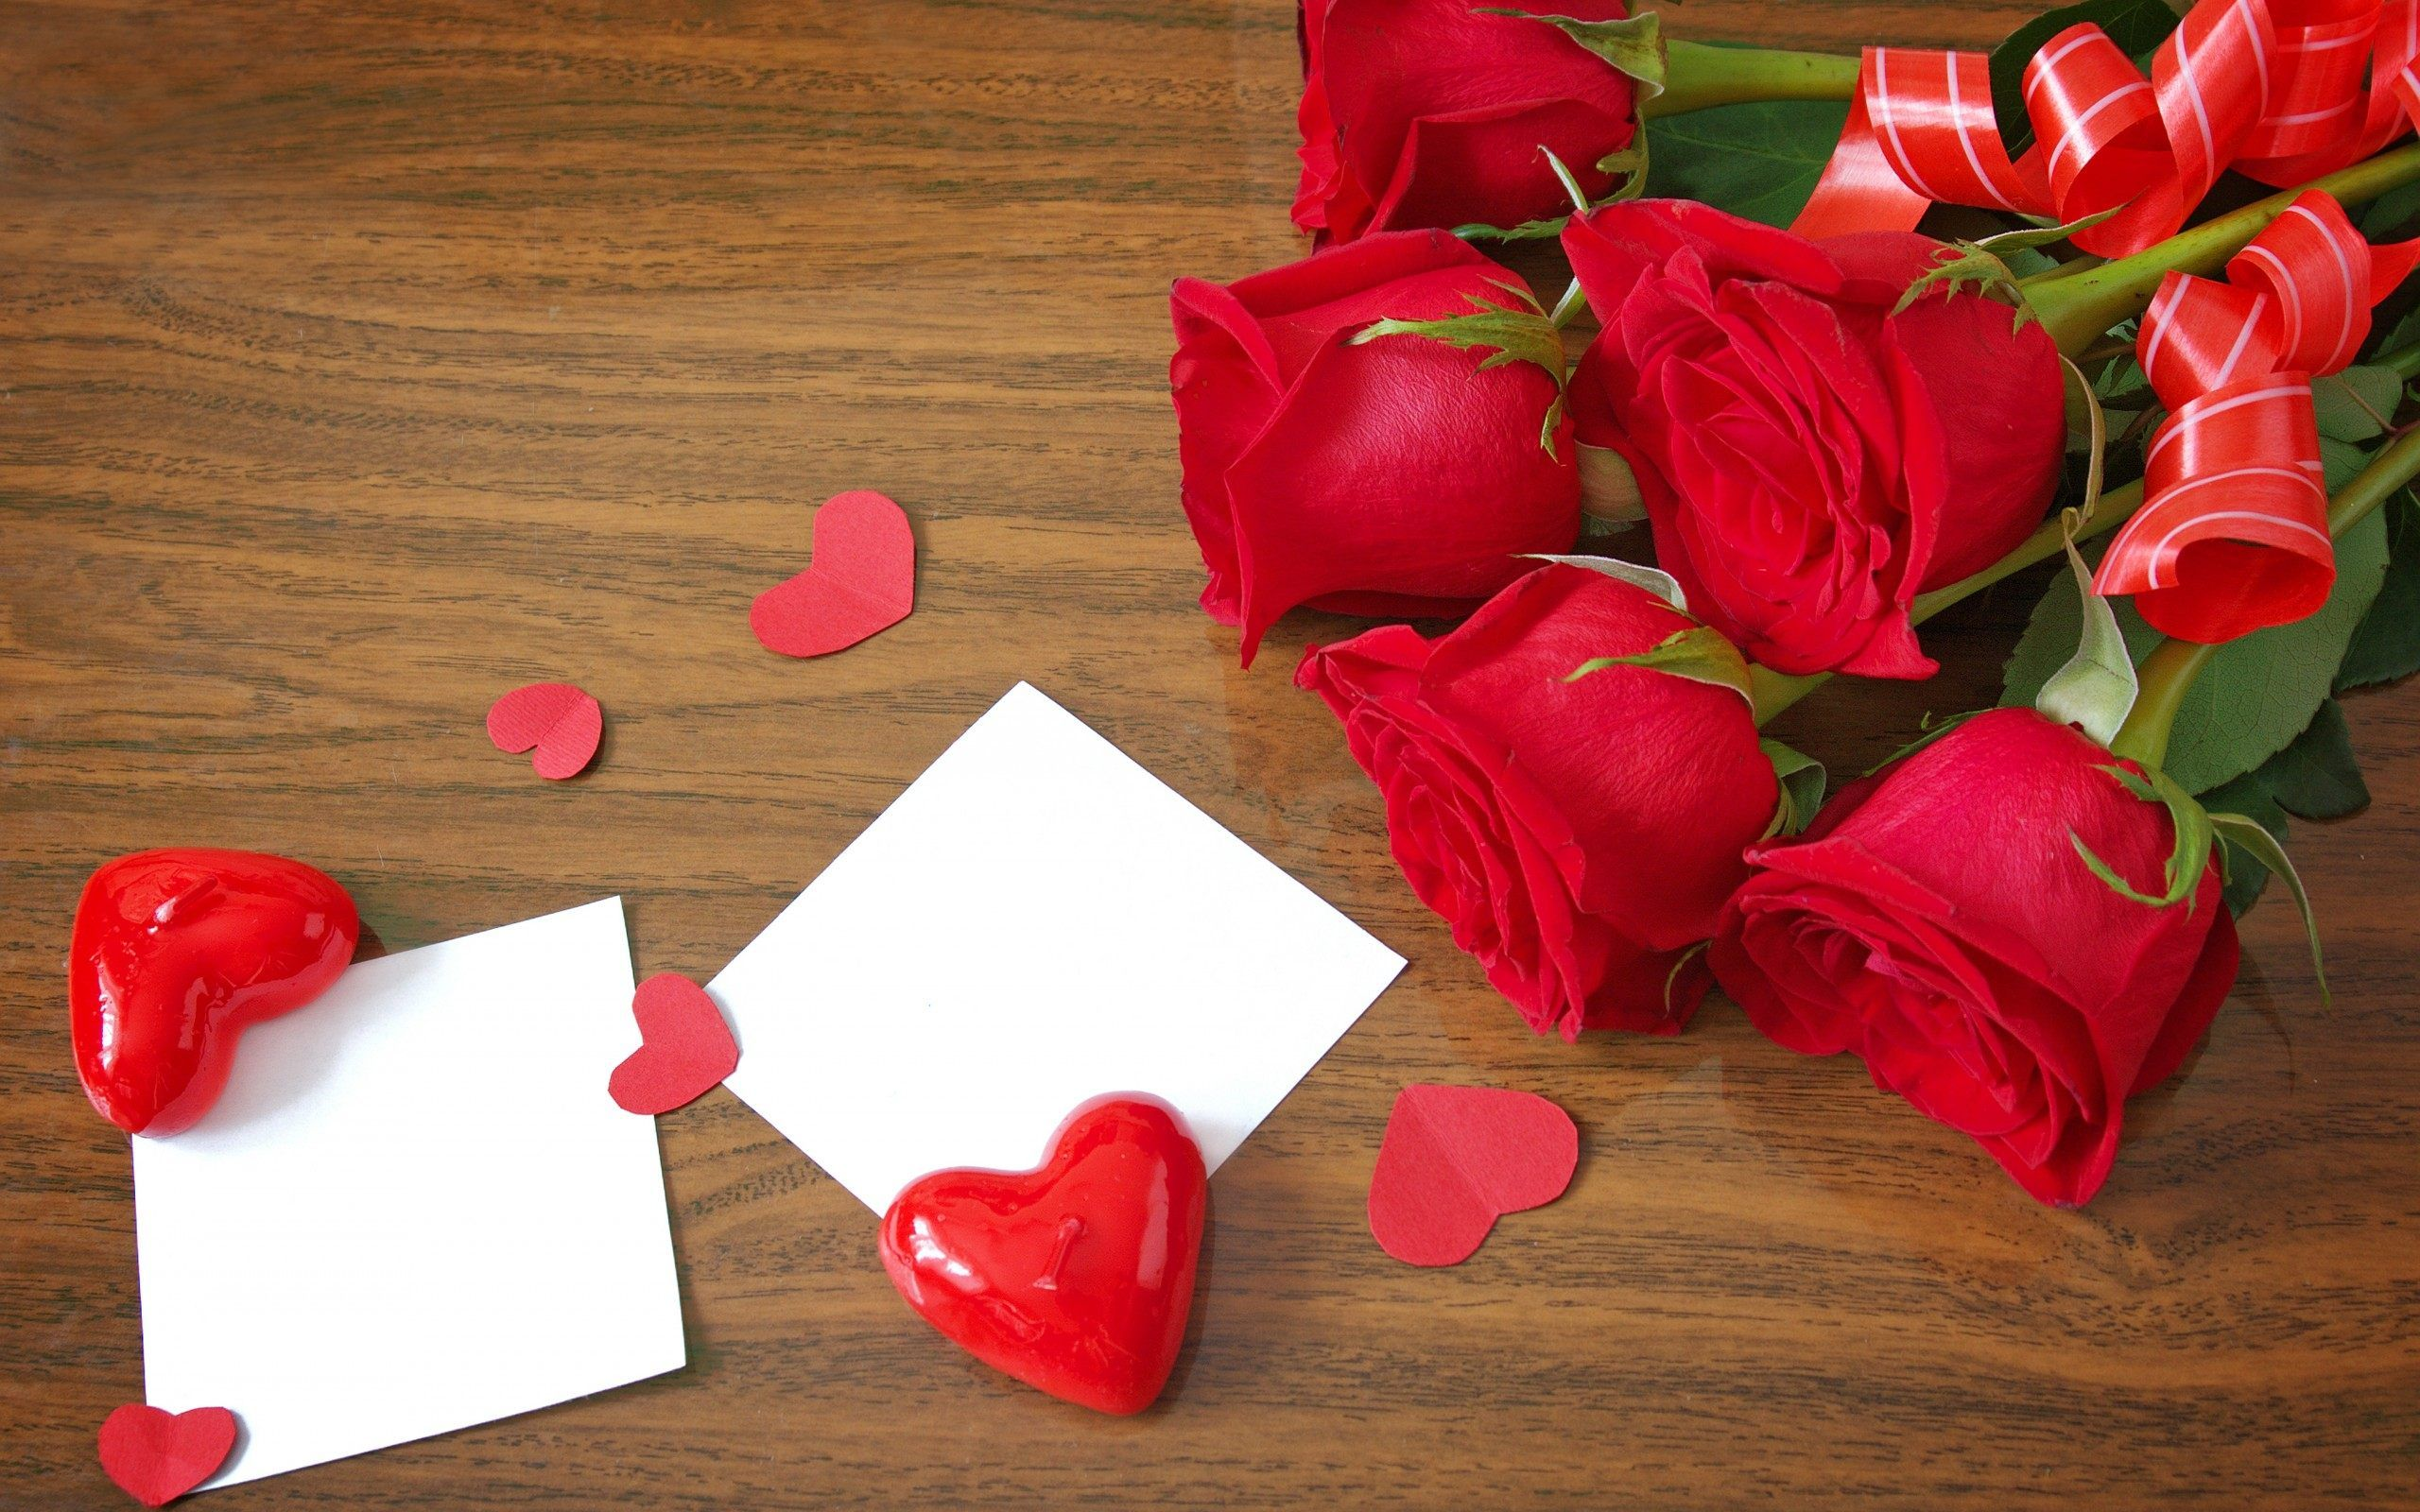 red love heart and flowers wallpaper - Download Hd red love heart ...